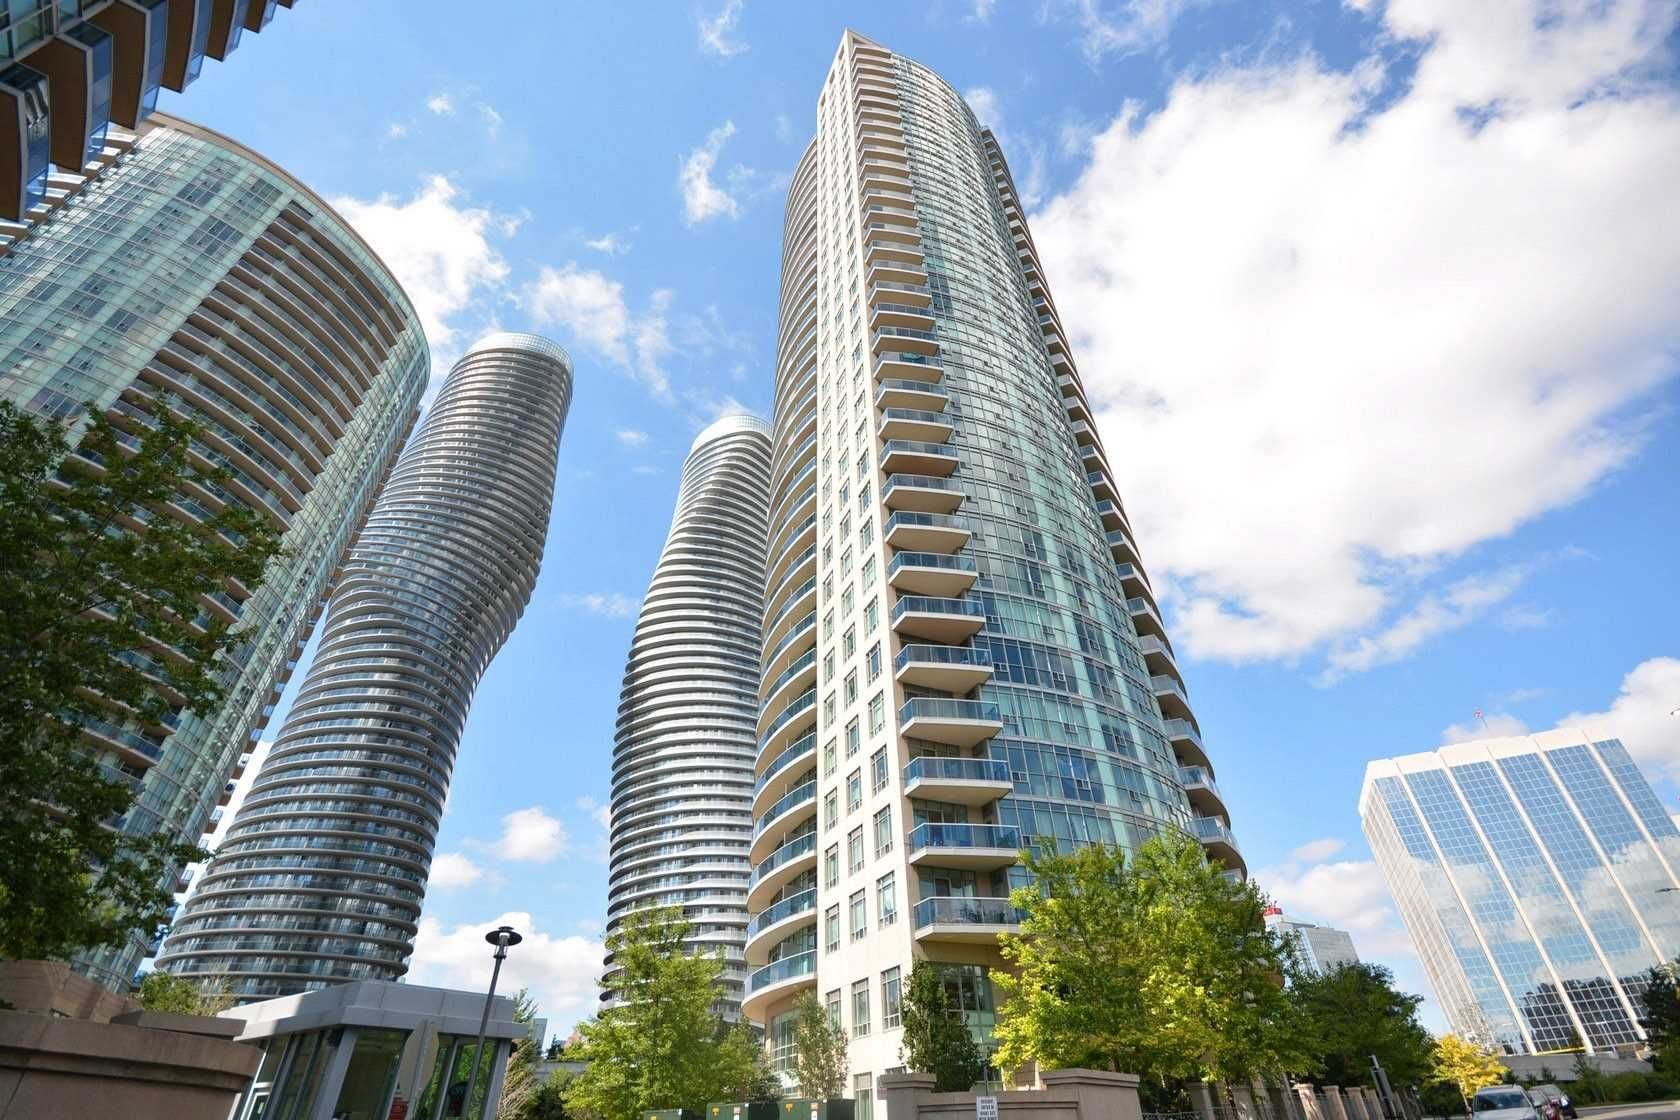 80 Absolute Ave, unit 2506 for rent in Downtown Core - image #1